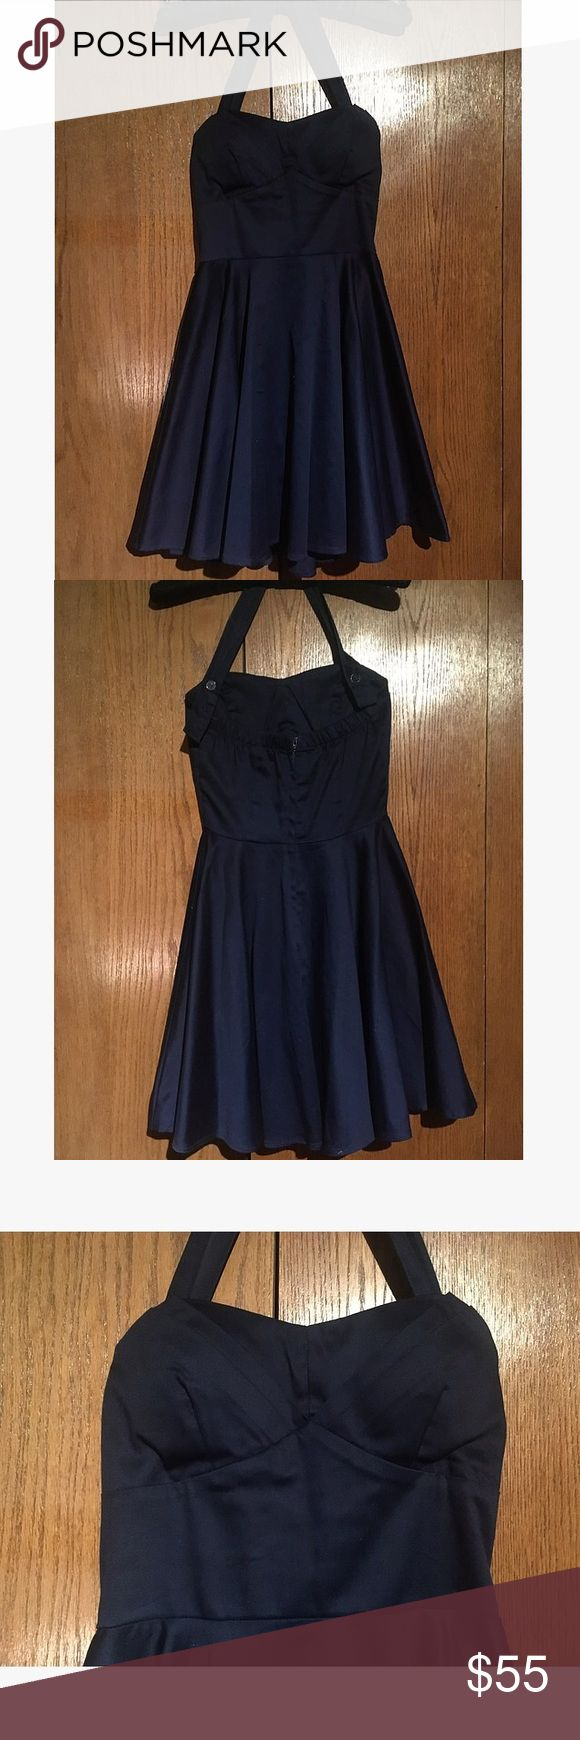 Traveling Cupcake Halter Dress in Navy Size S Navy blue A-line halter dress from Modcloth, size small, worn once, great condition!            •Elasticized back. Adjustable halter strap.  •Lined bust. Back zipper closure. Padded bust cups. •Length from bust to hem 26in. Length of skirt 17.5in. Length of waist laying flat 11.5in Modcloth Dresses Mini